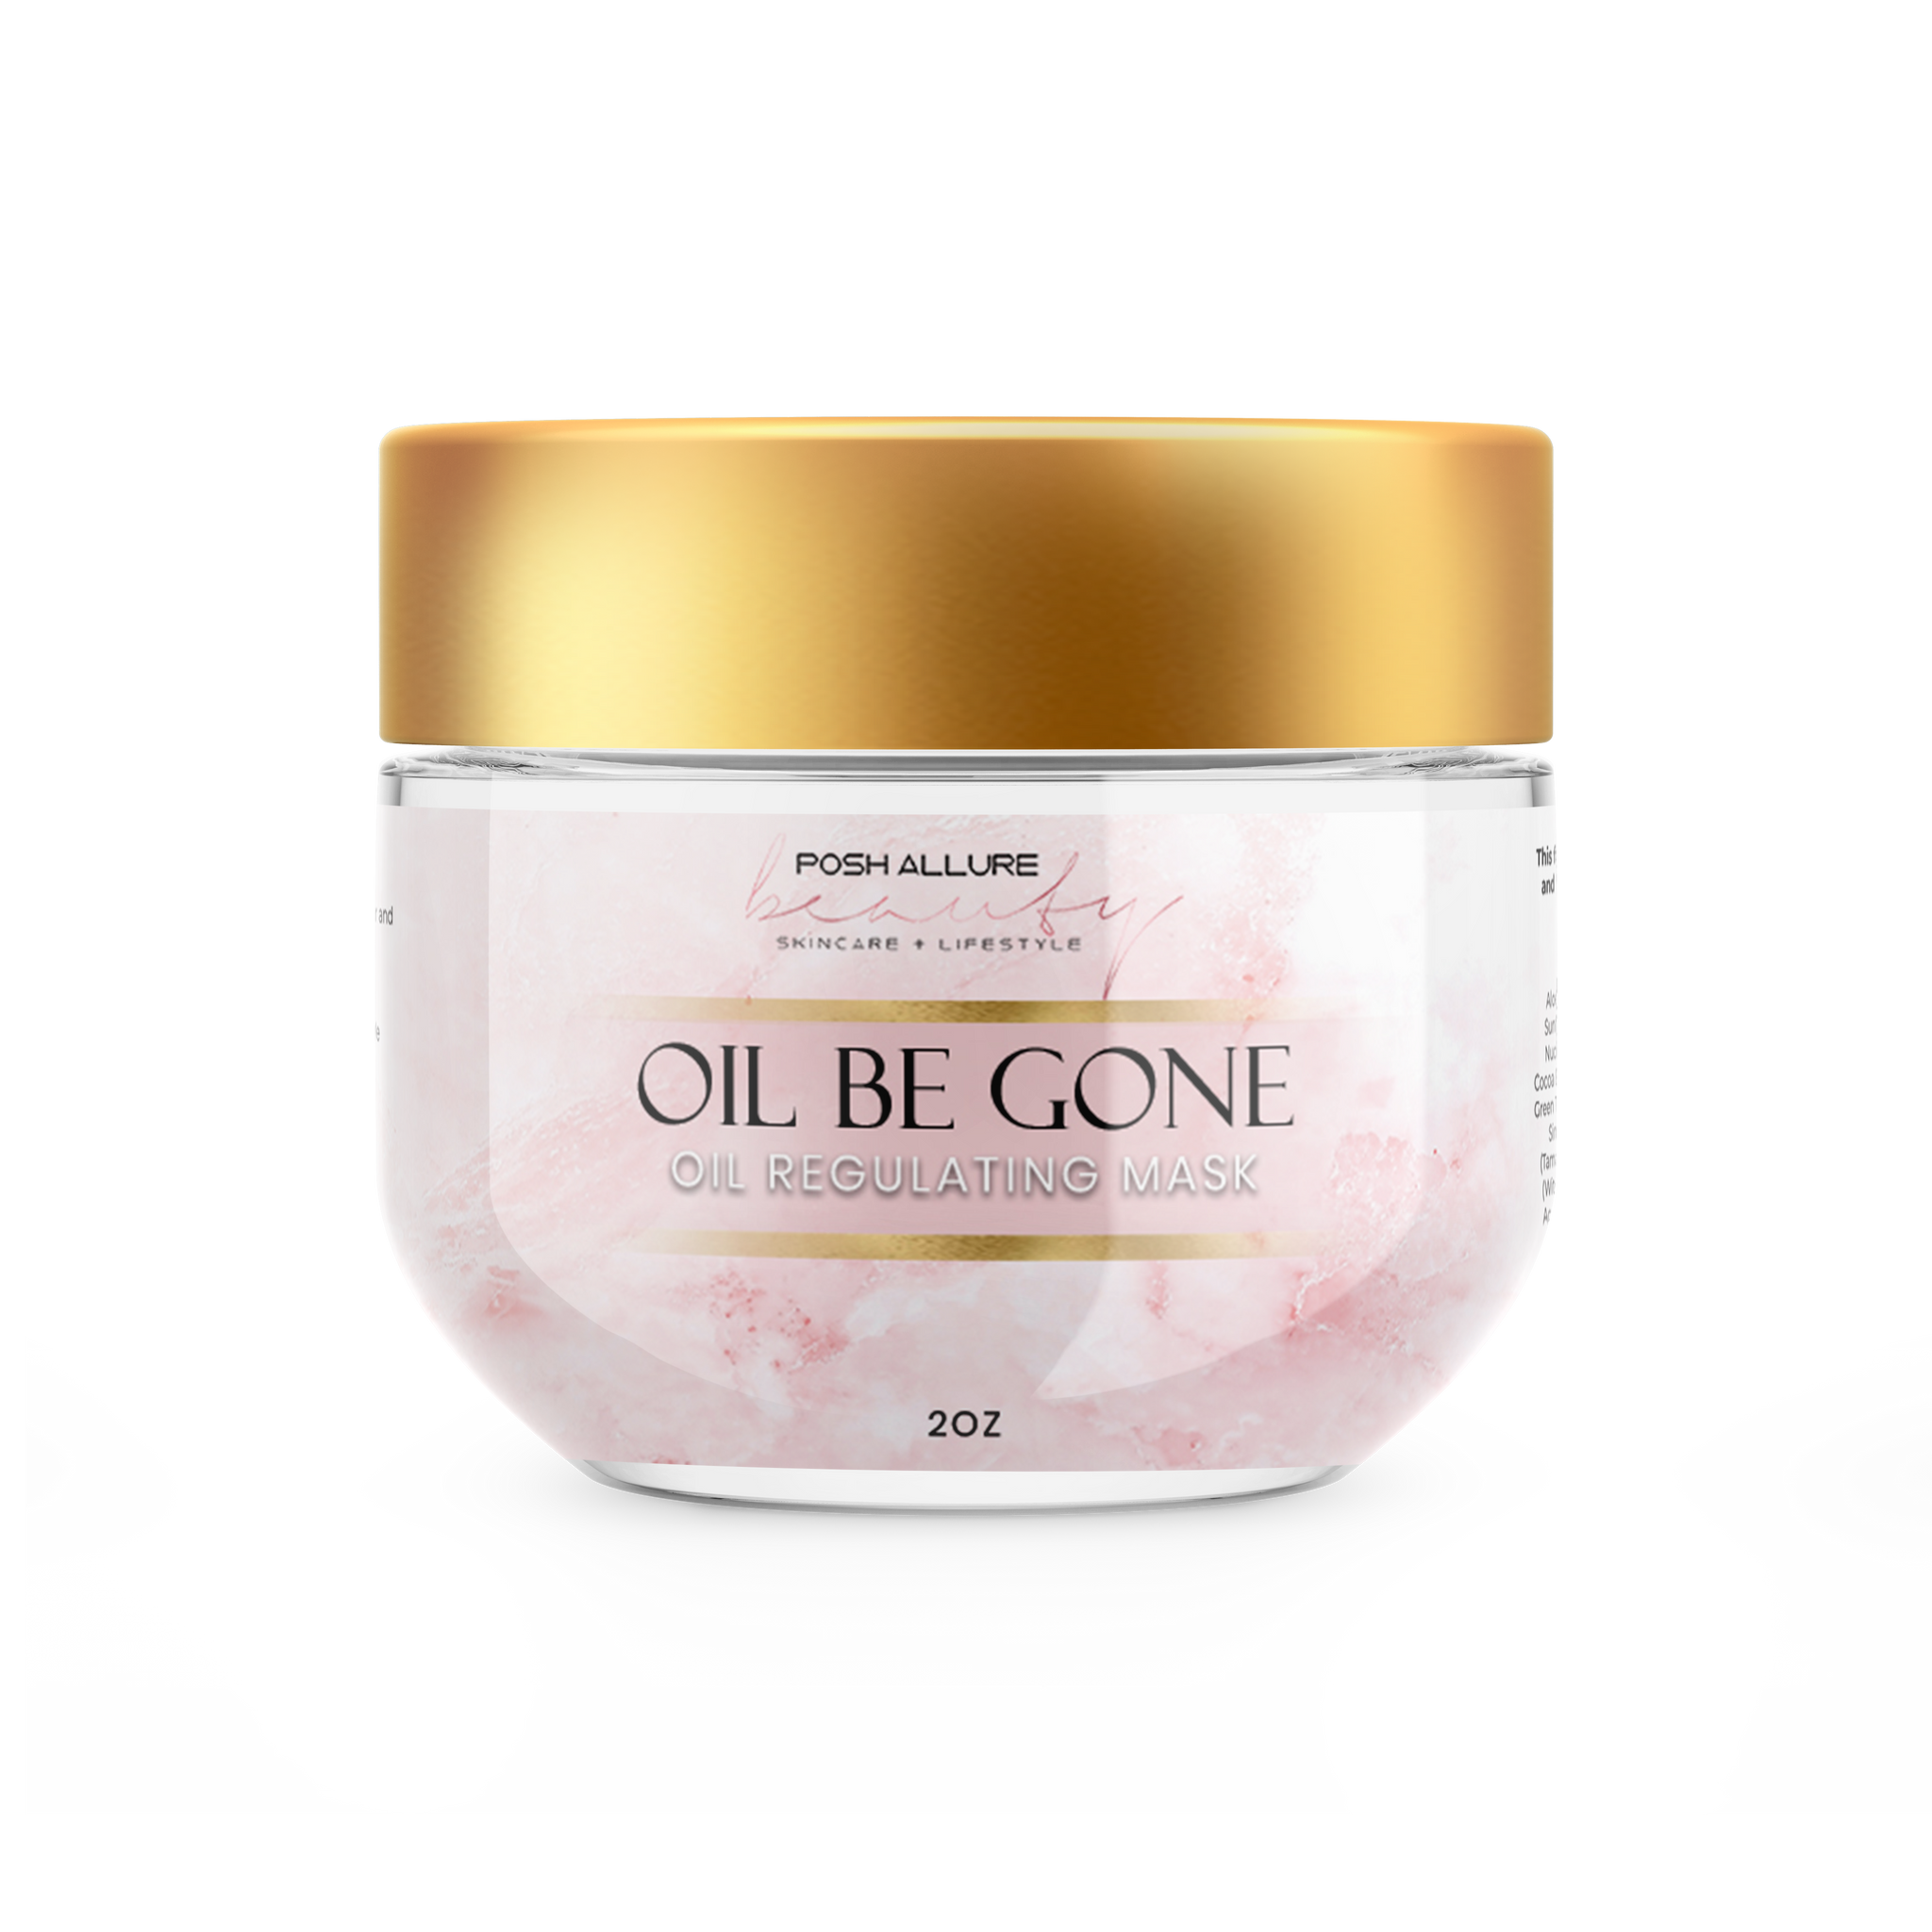 Oil Be Gone Oil Regulating Mask - Posh|Allure Beauty